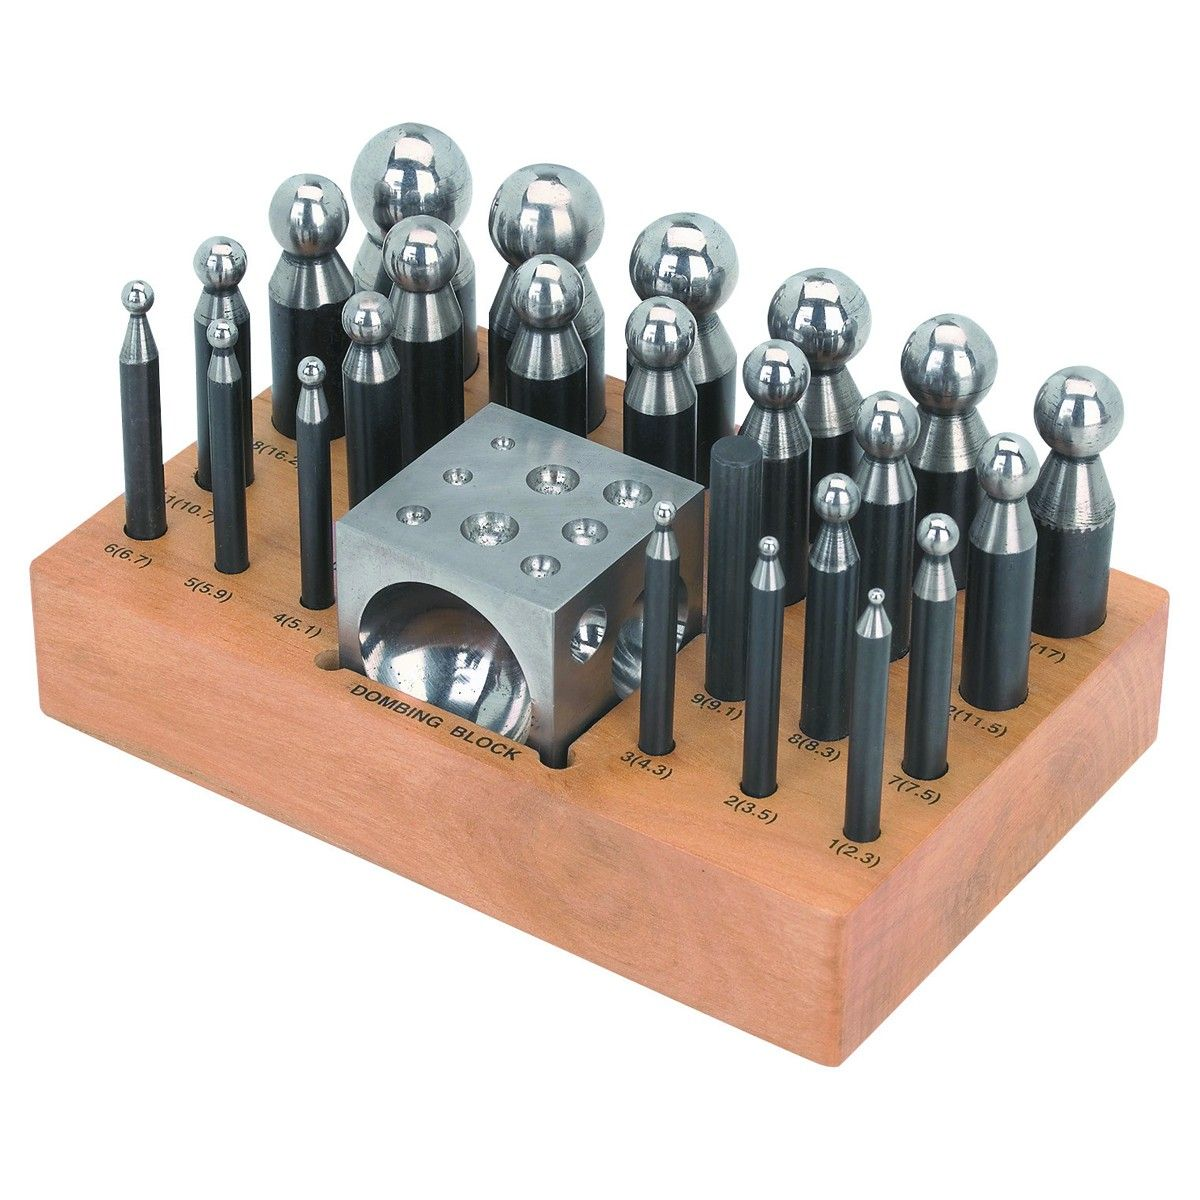 Doming Block And Punch Set 25 Pc In 2020 Penny Jewelry Jewelry Making Tools Metal Working Tools